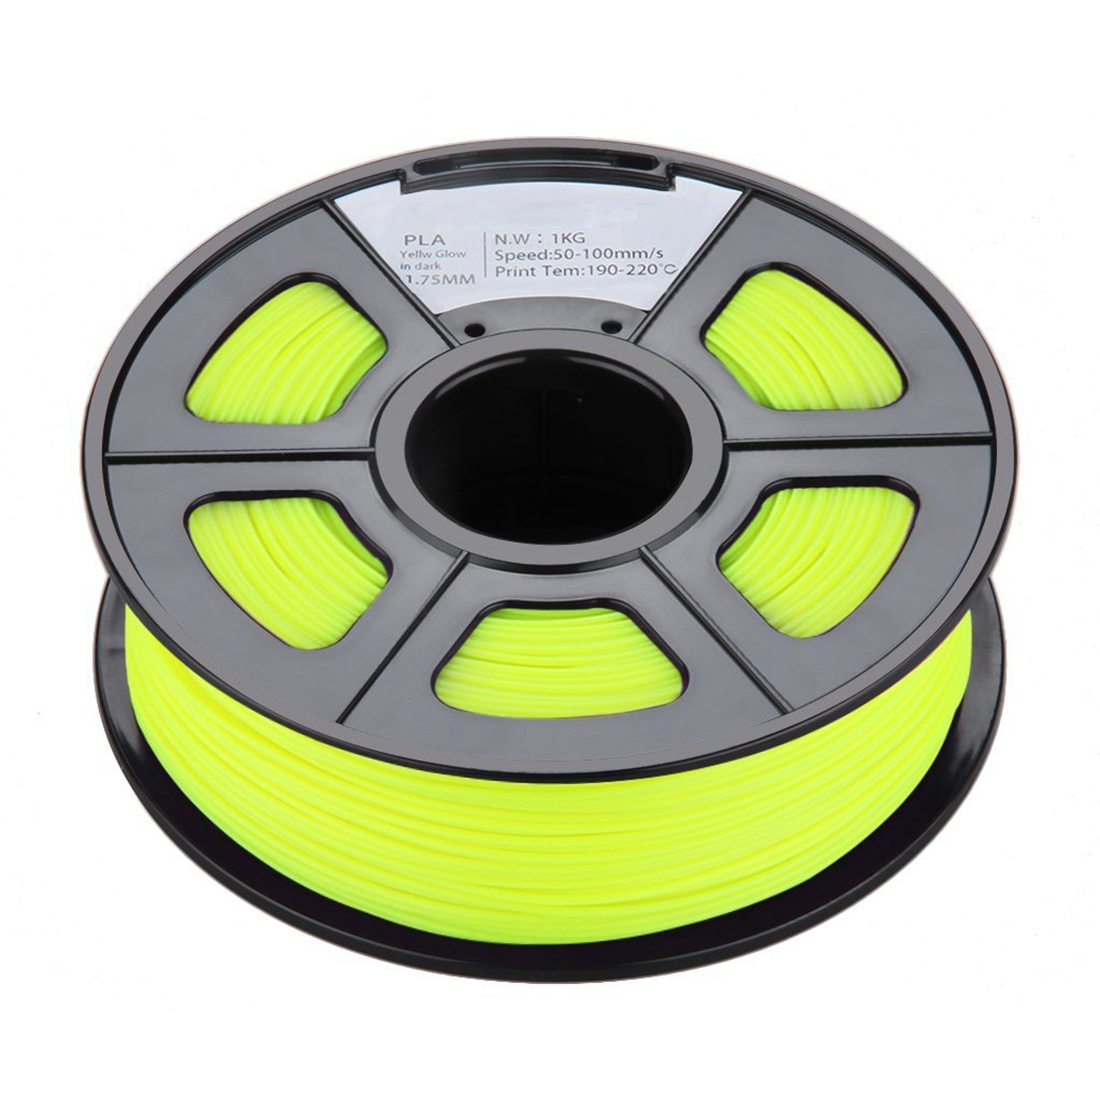 New 1.75mm Glow in the Dark PLA 3D Printer Filament - 1kg Spool (2.2 lbs) - Dimensional Accuracy +/- 0.02mm (Yellow) zjys 4 sop 8